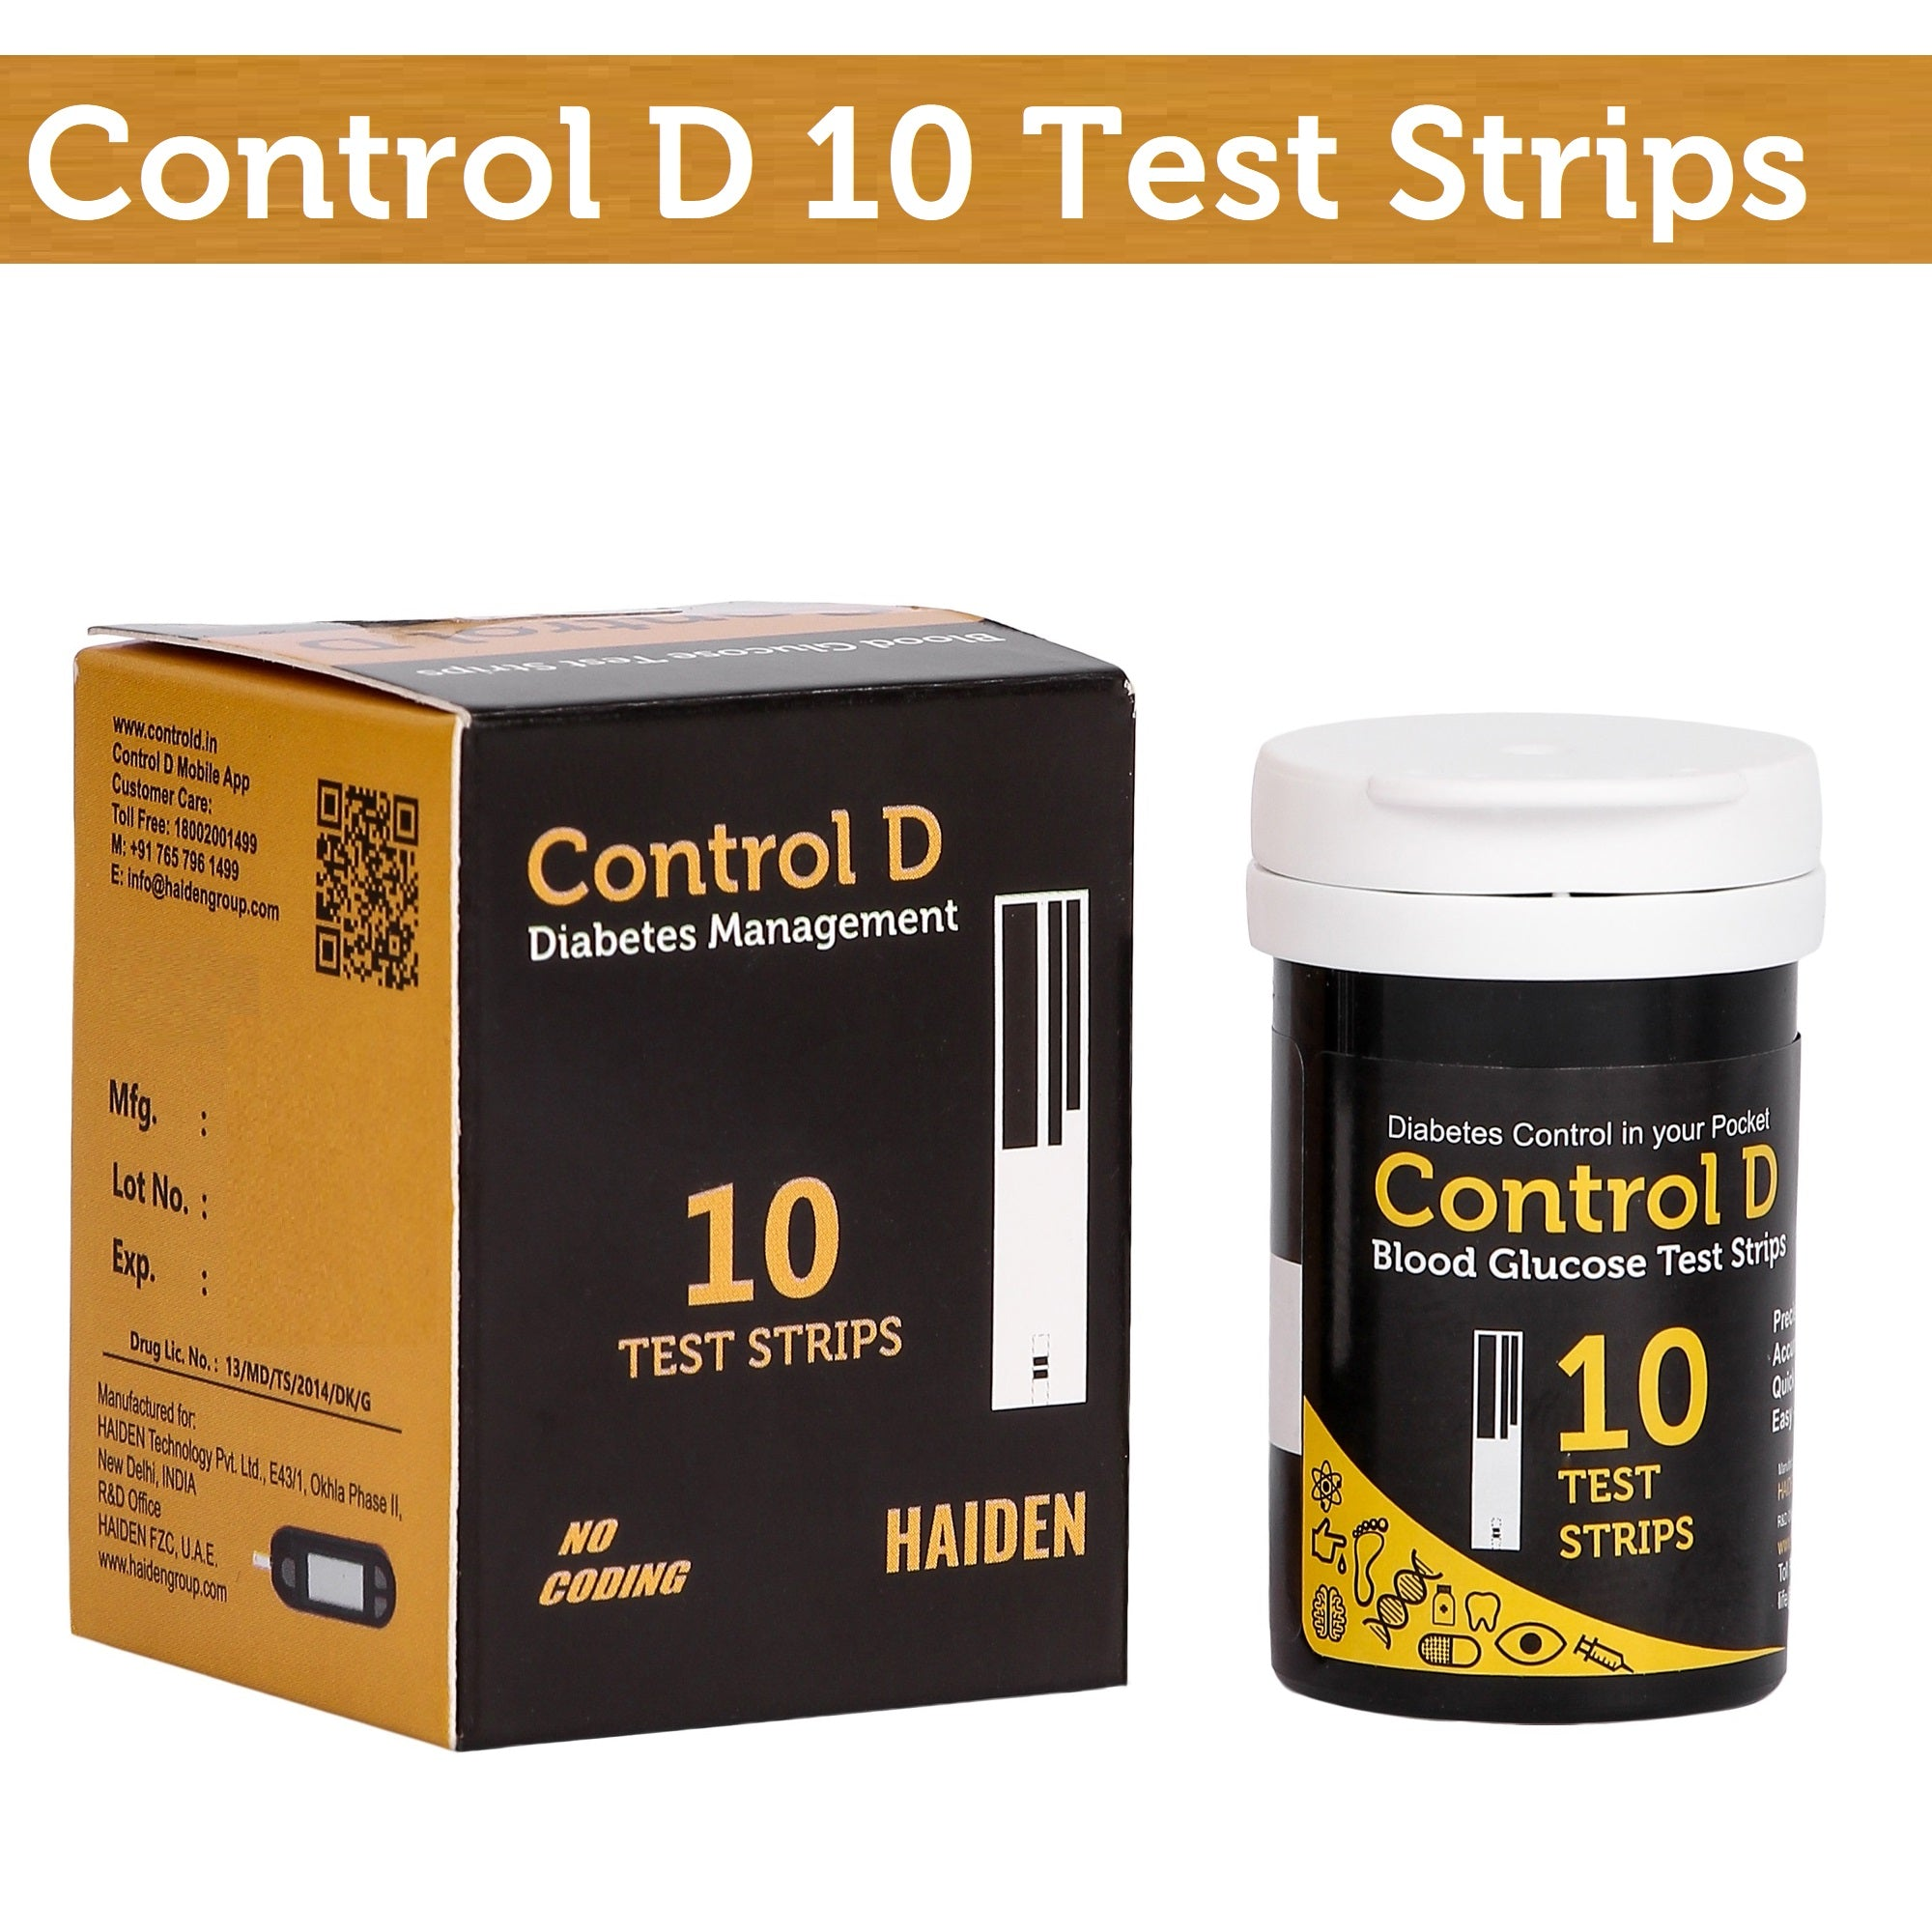 Control D 10 Test Strips